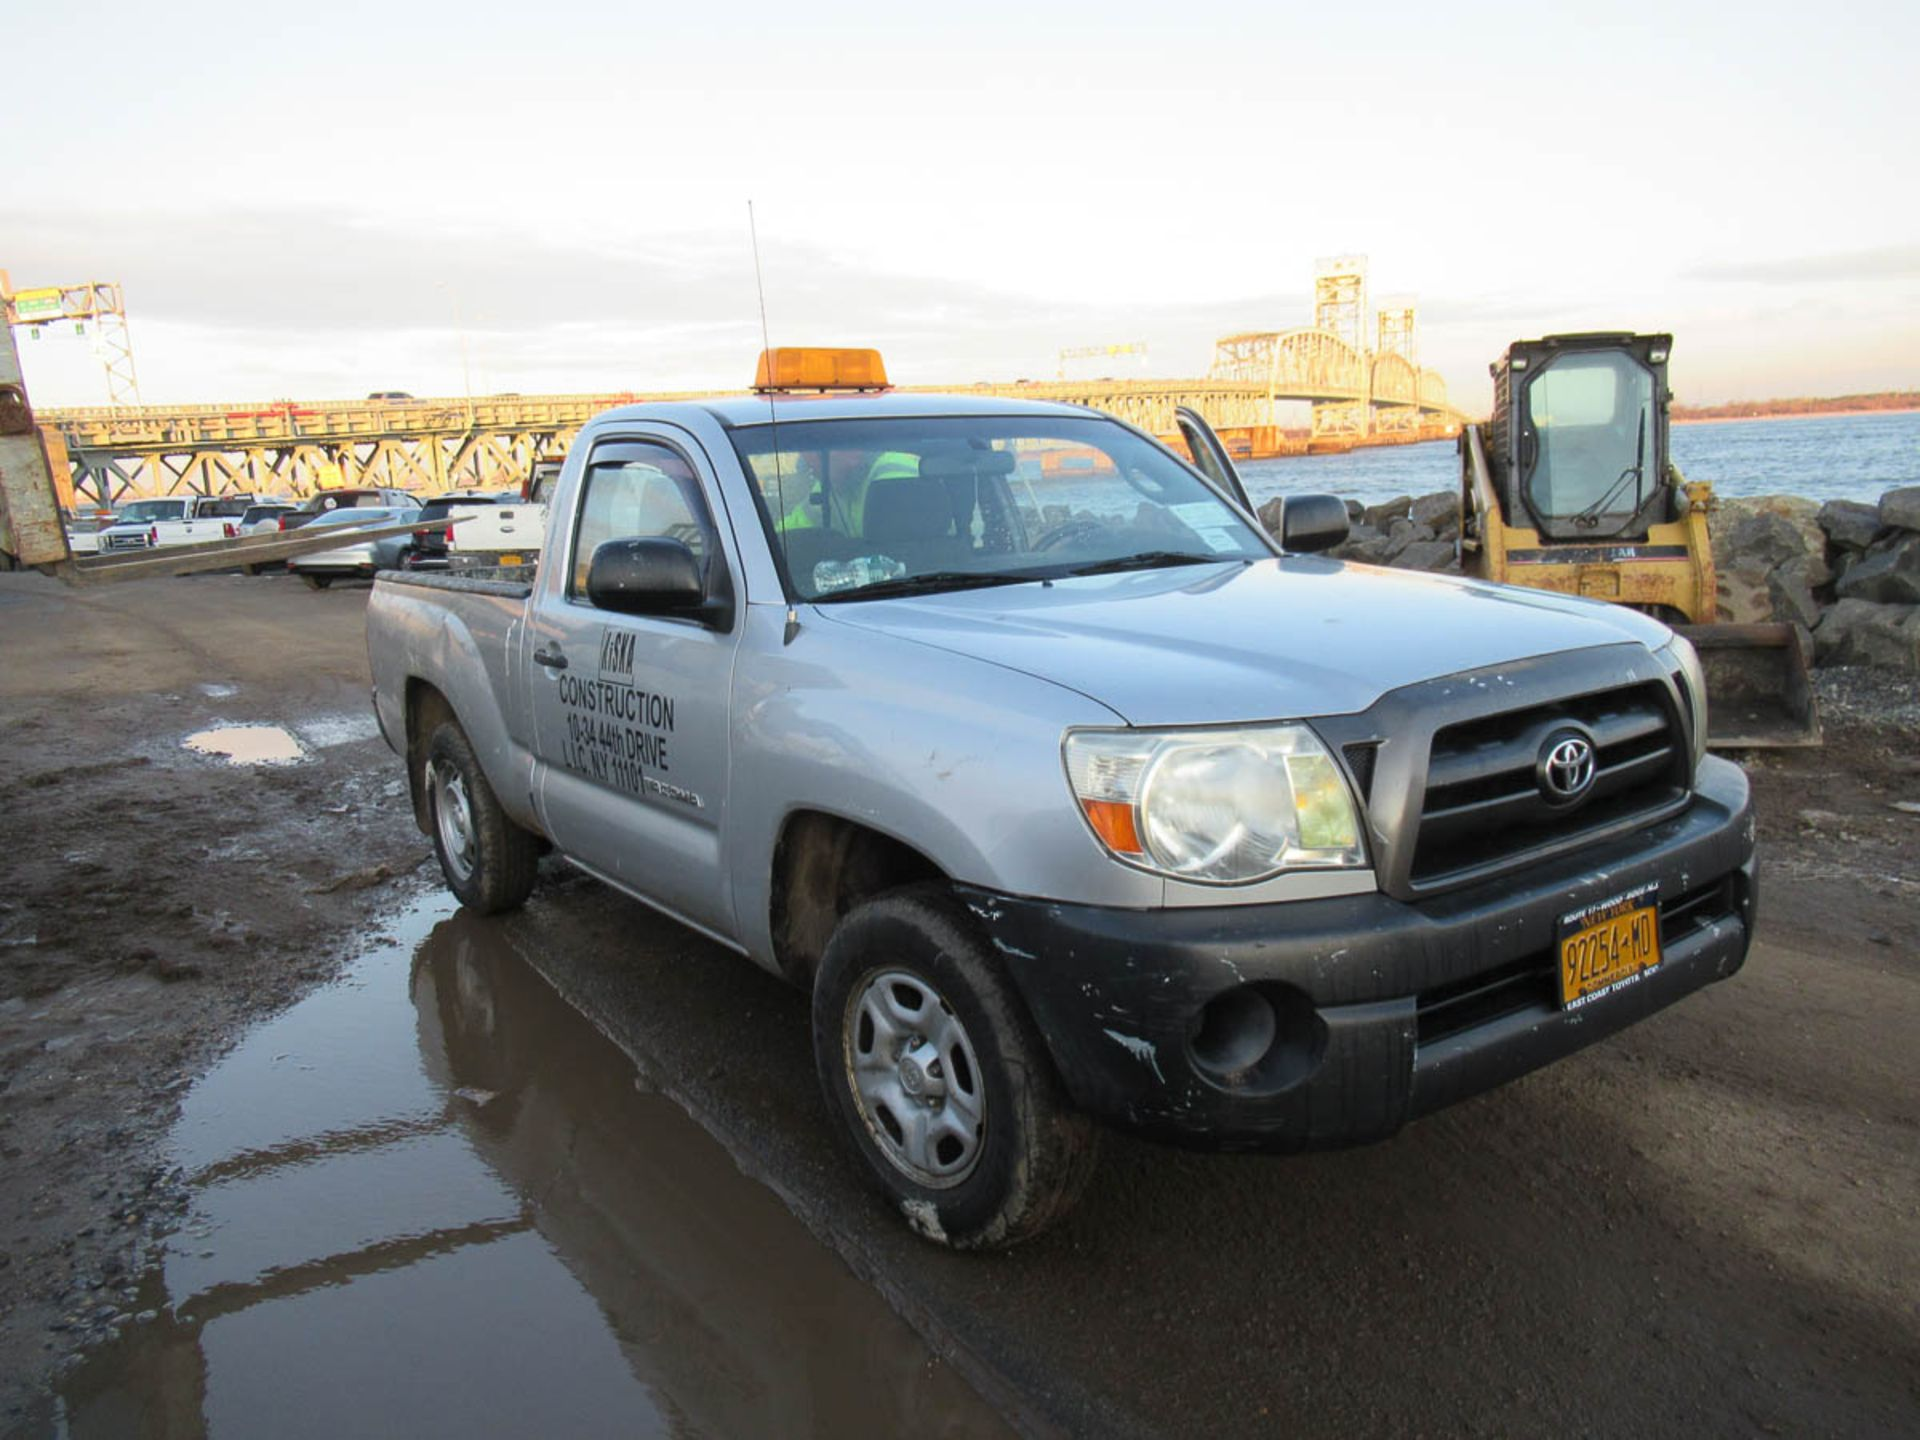 2008 TOYOTA TACOMA PICKUP TRUCK, AUTOMATIC, WITH APPROXIMATELY 105,732 MILES, VIN: 5TENX22N382504186 - Image 8 of 12